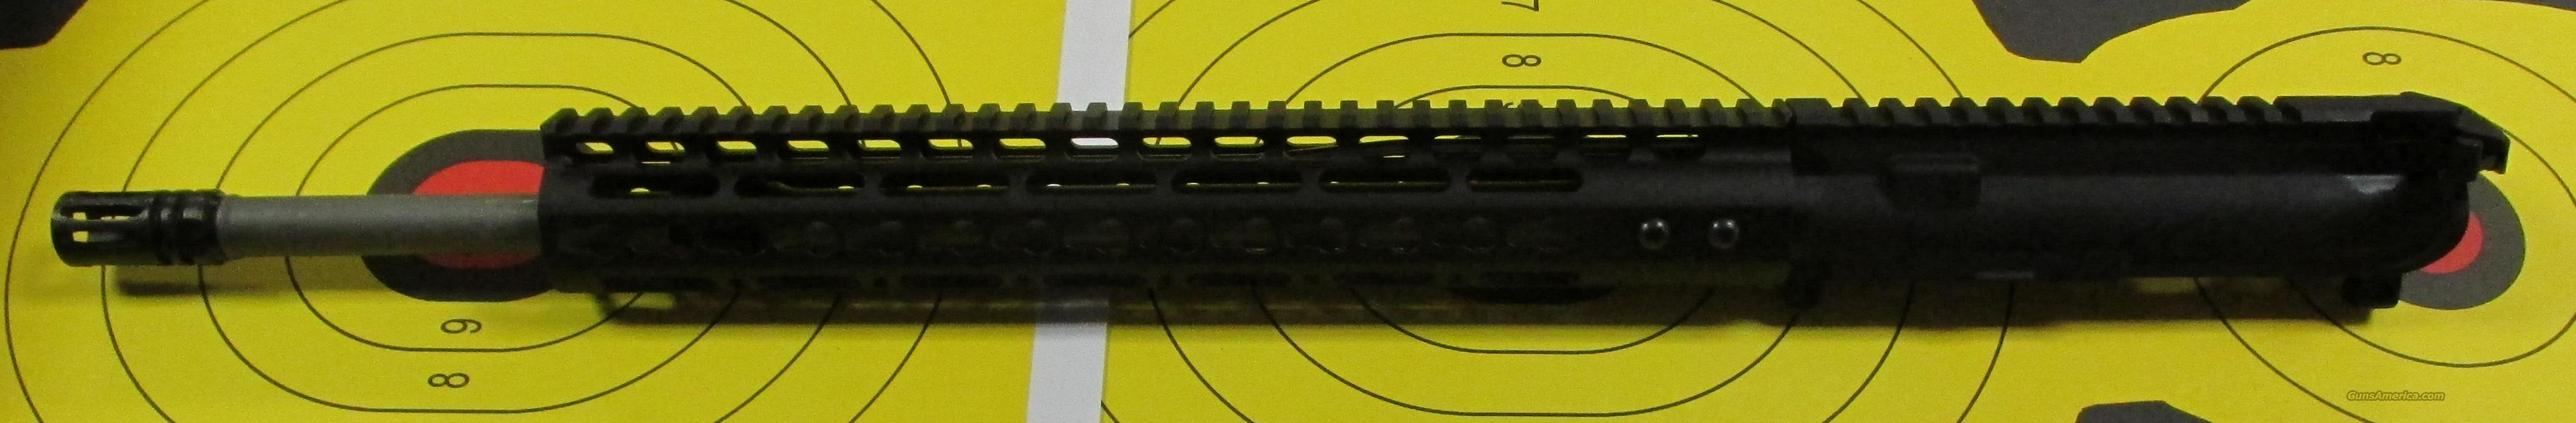 "NOVESKE 5.56mm Rogue 18"" Complete upper  Non-Guns > Gun Parts > M16-AR15 > Upper Only"